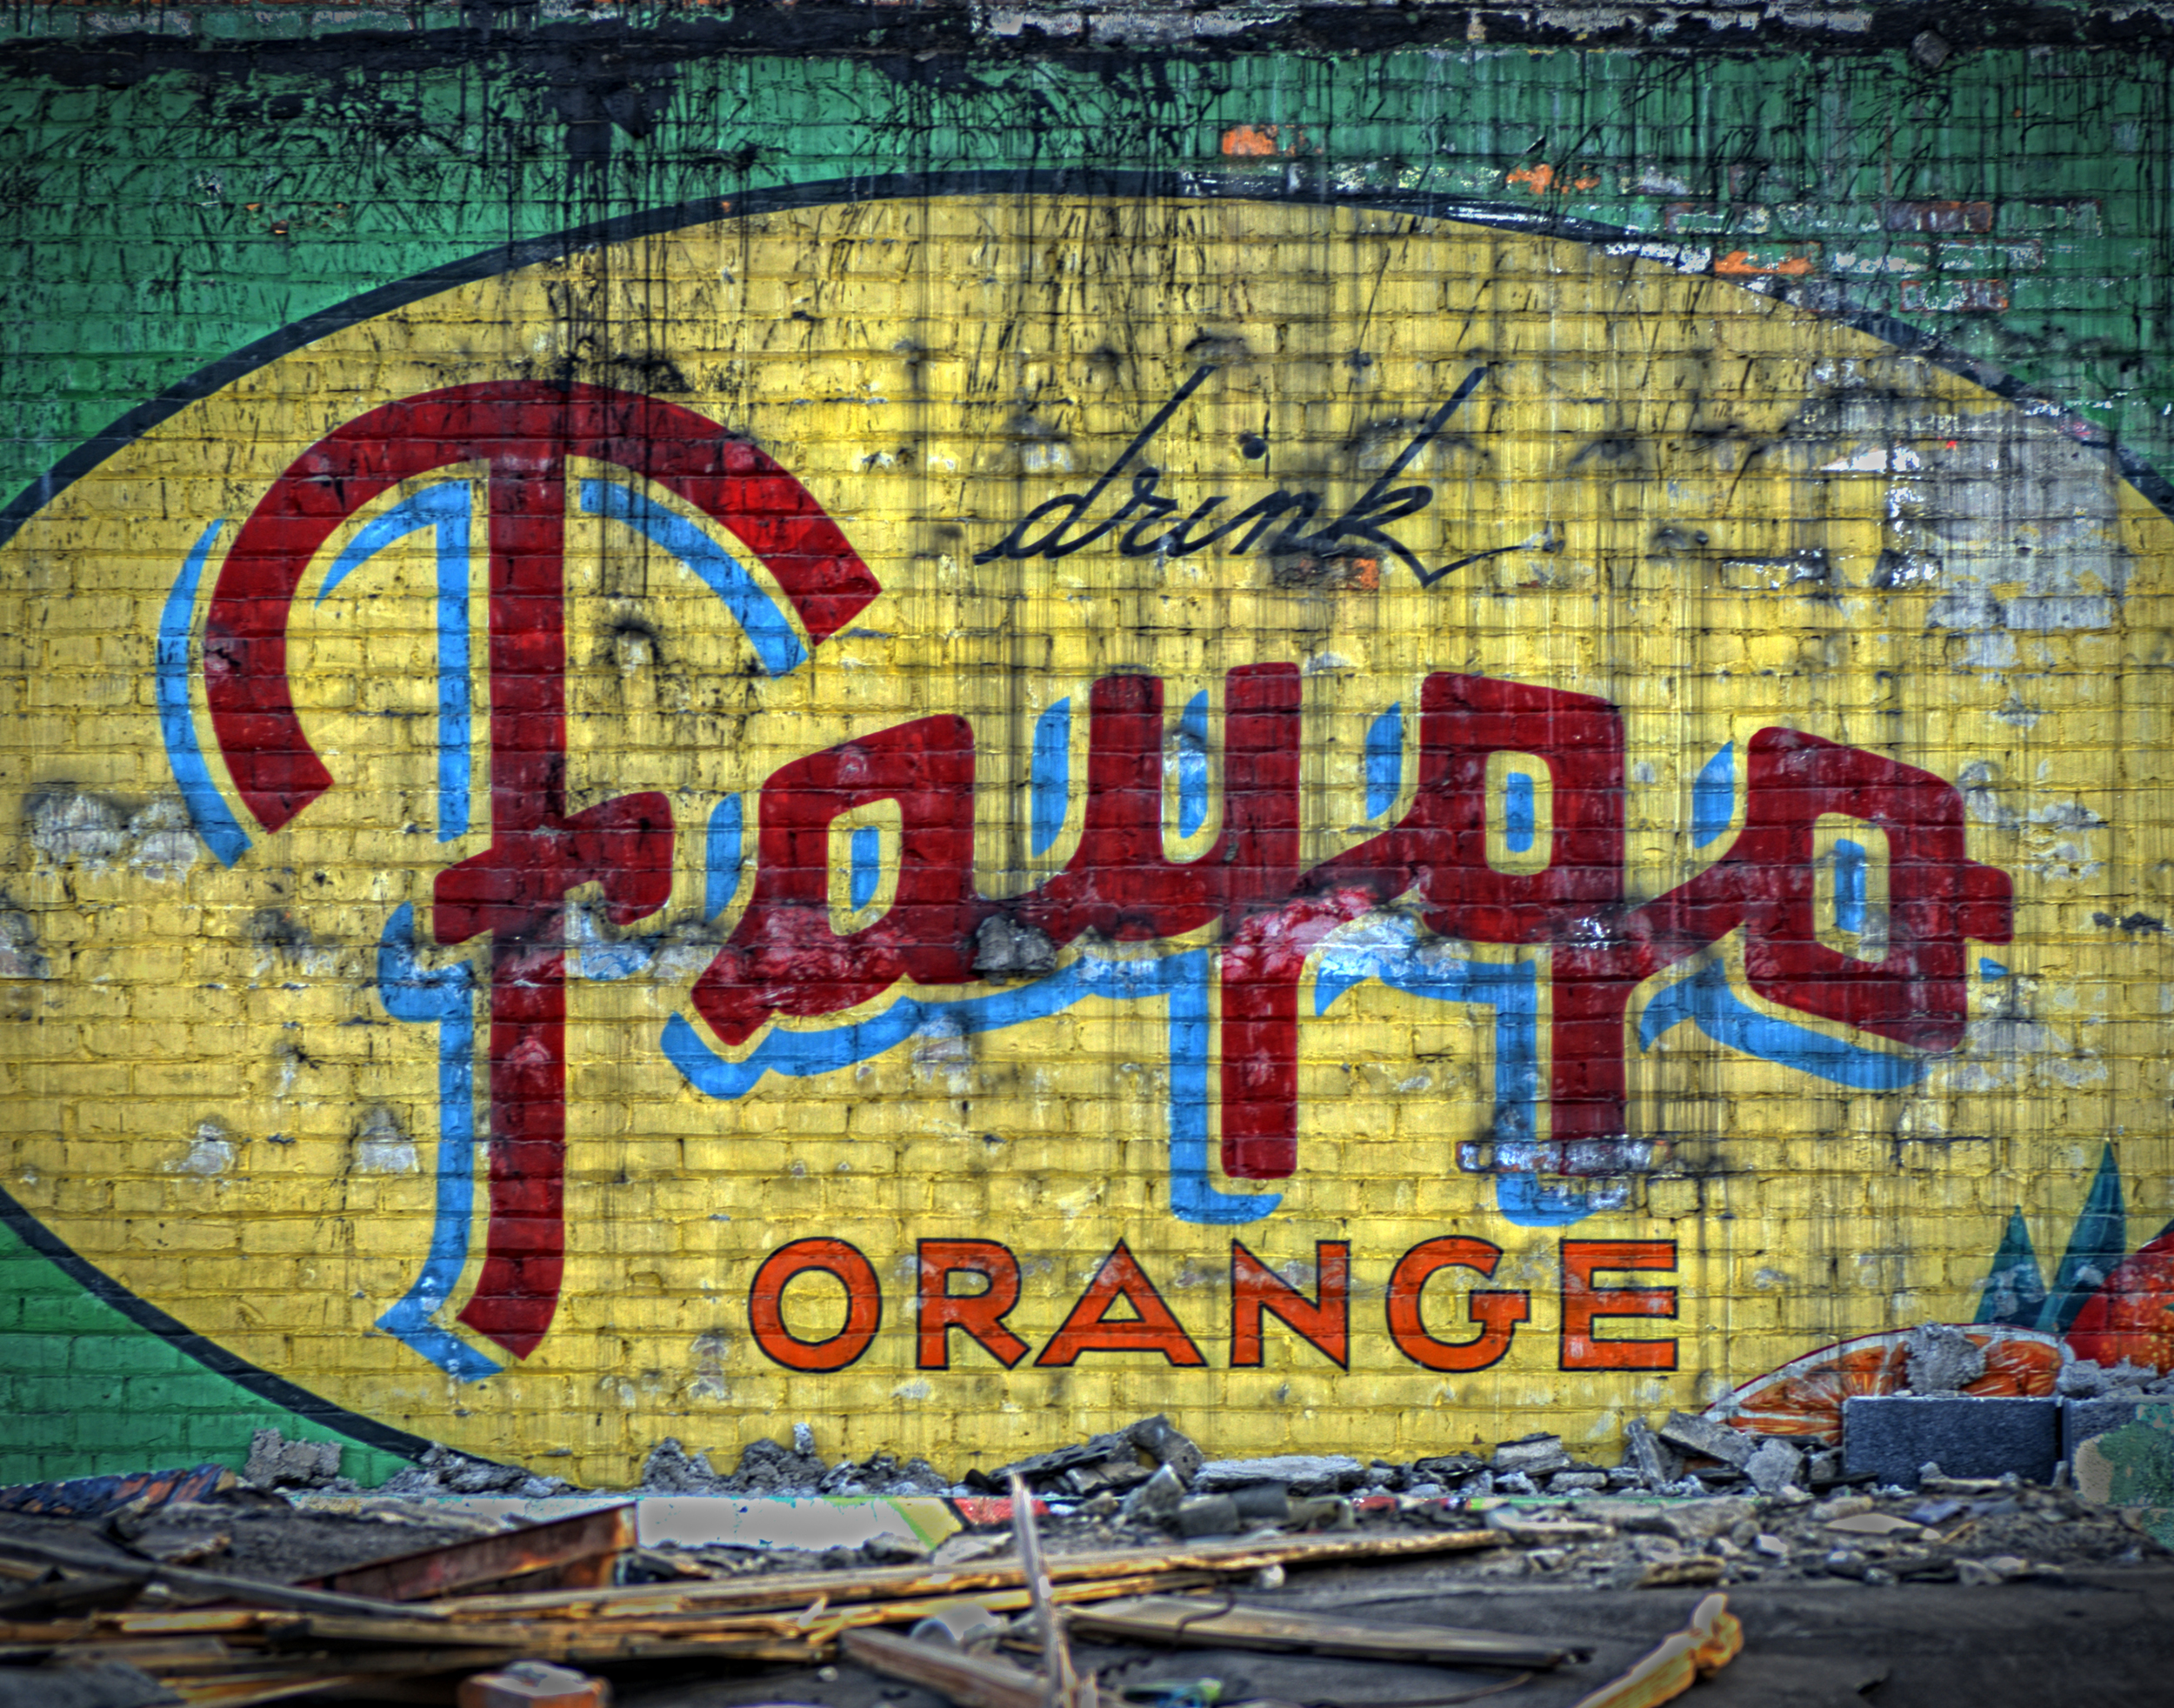 Faygo ghost building sign